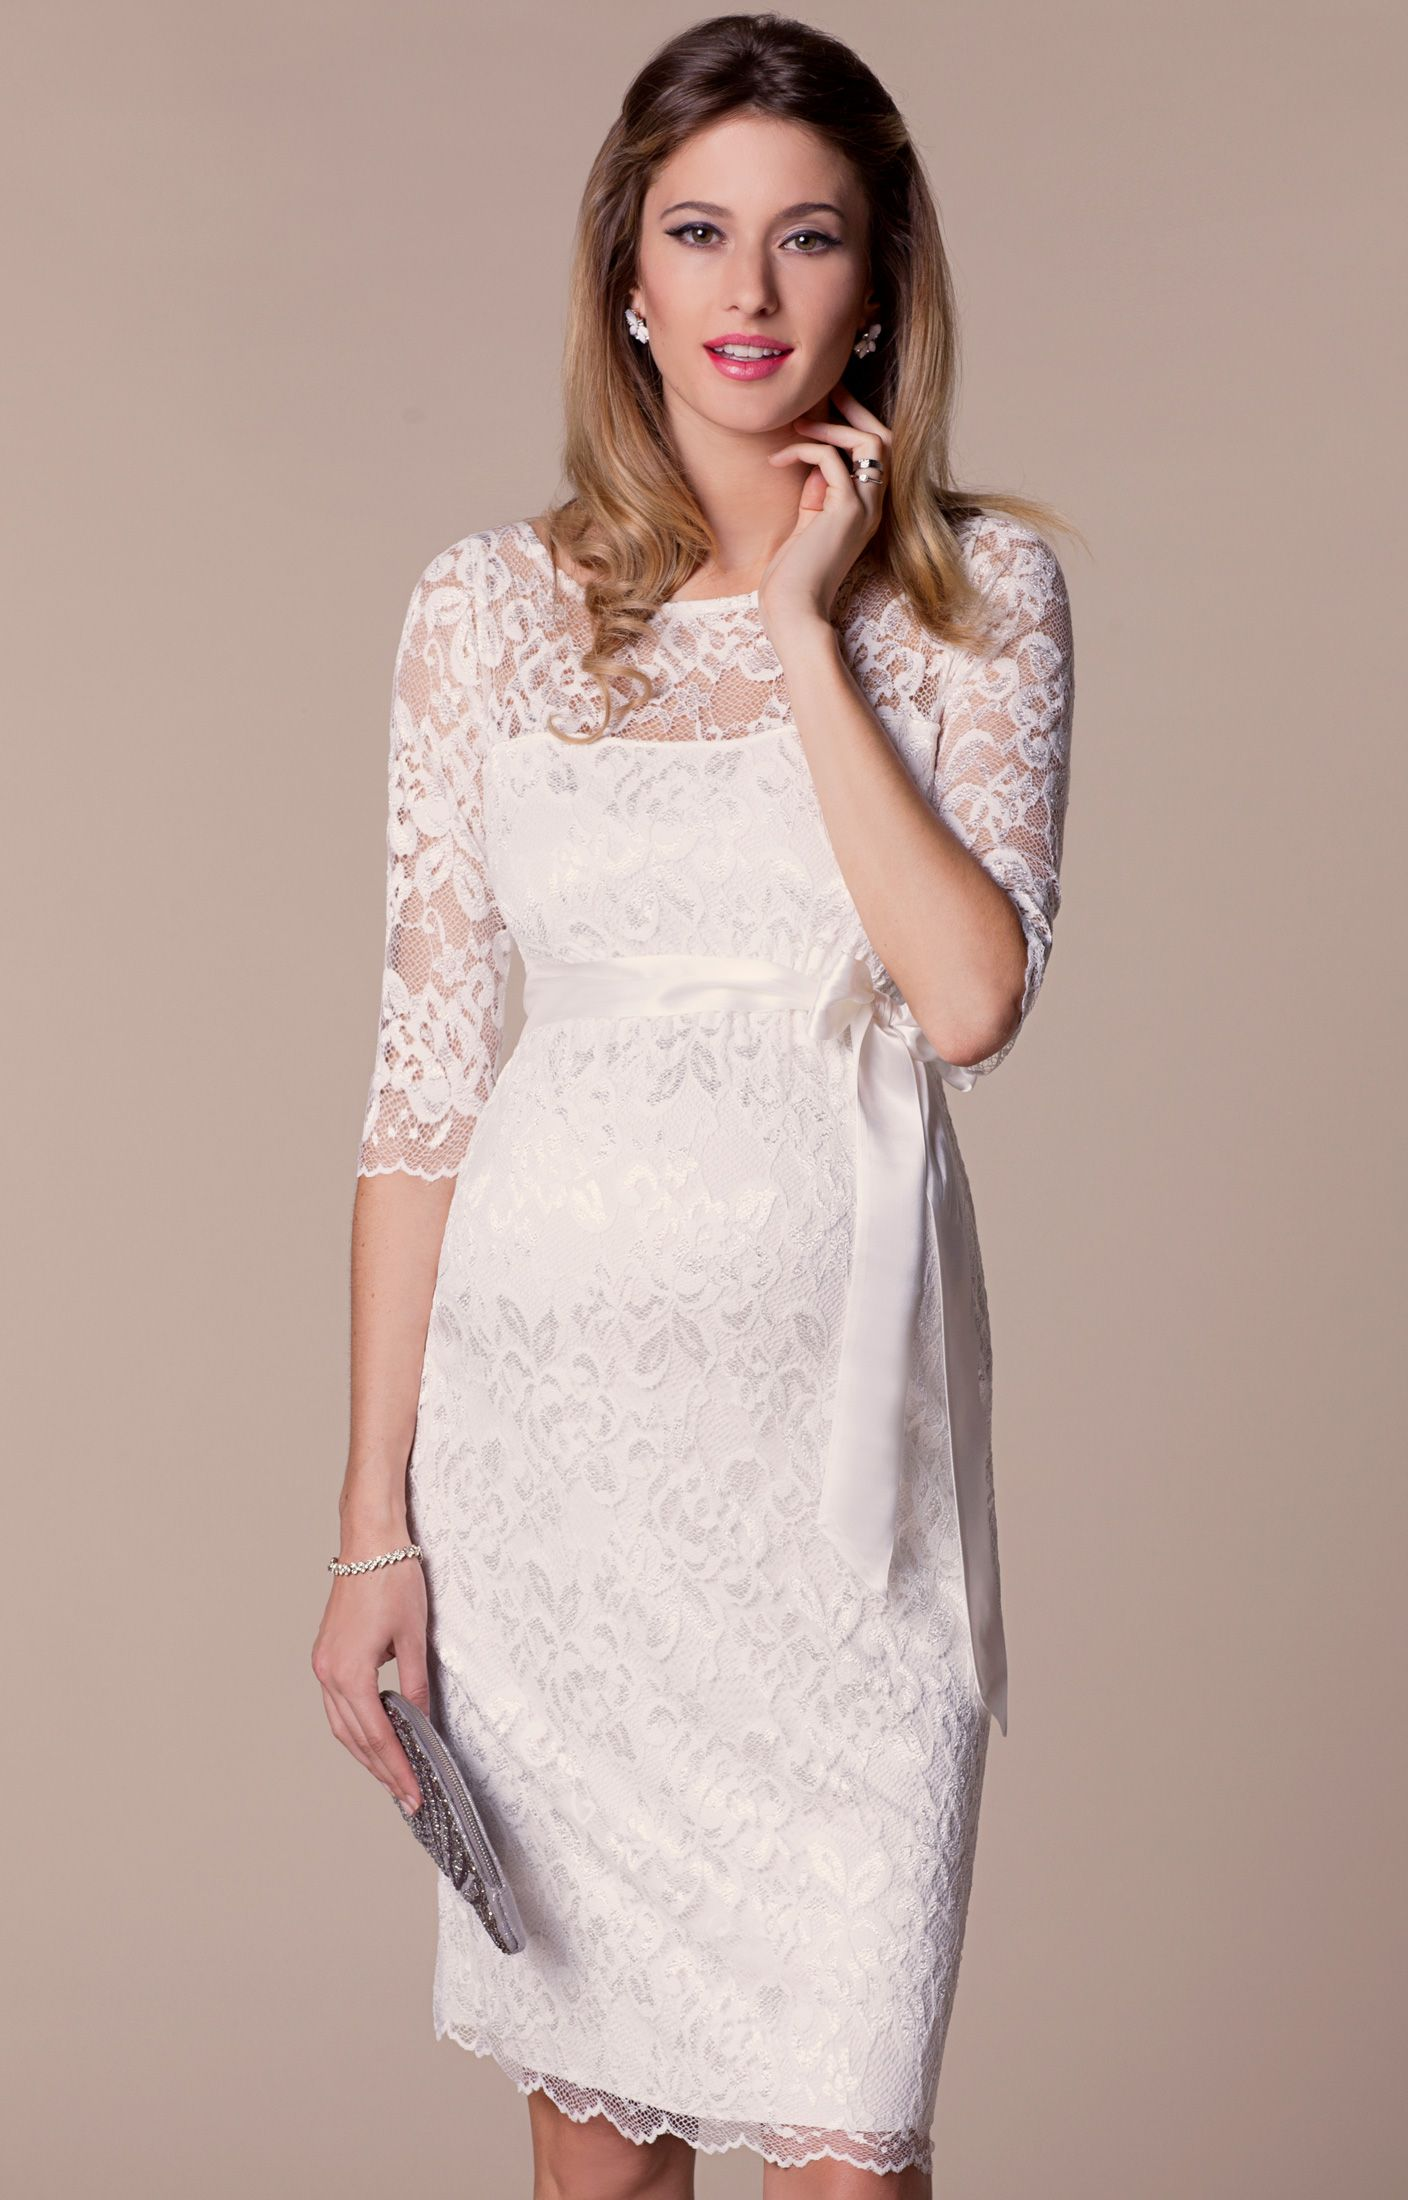 Amelia dress short amelia ivory and wedding dress beloved by pregnant celebrities our bestselling amelia lace maternity dress fabulous in every colour ombrellifo Choice Image